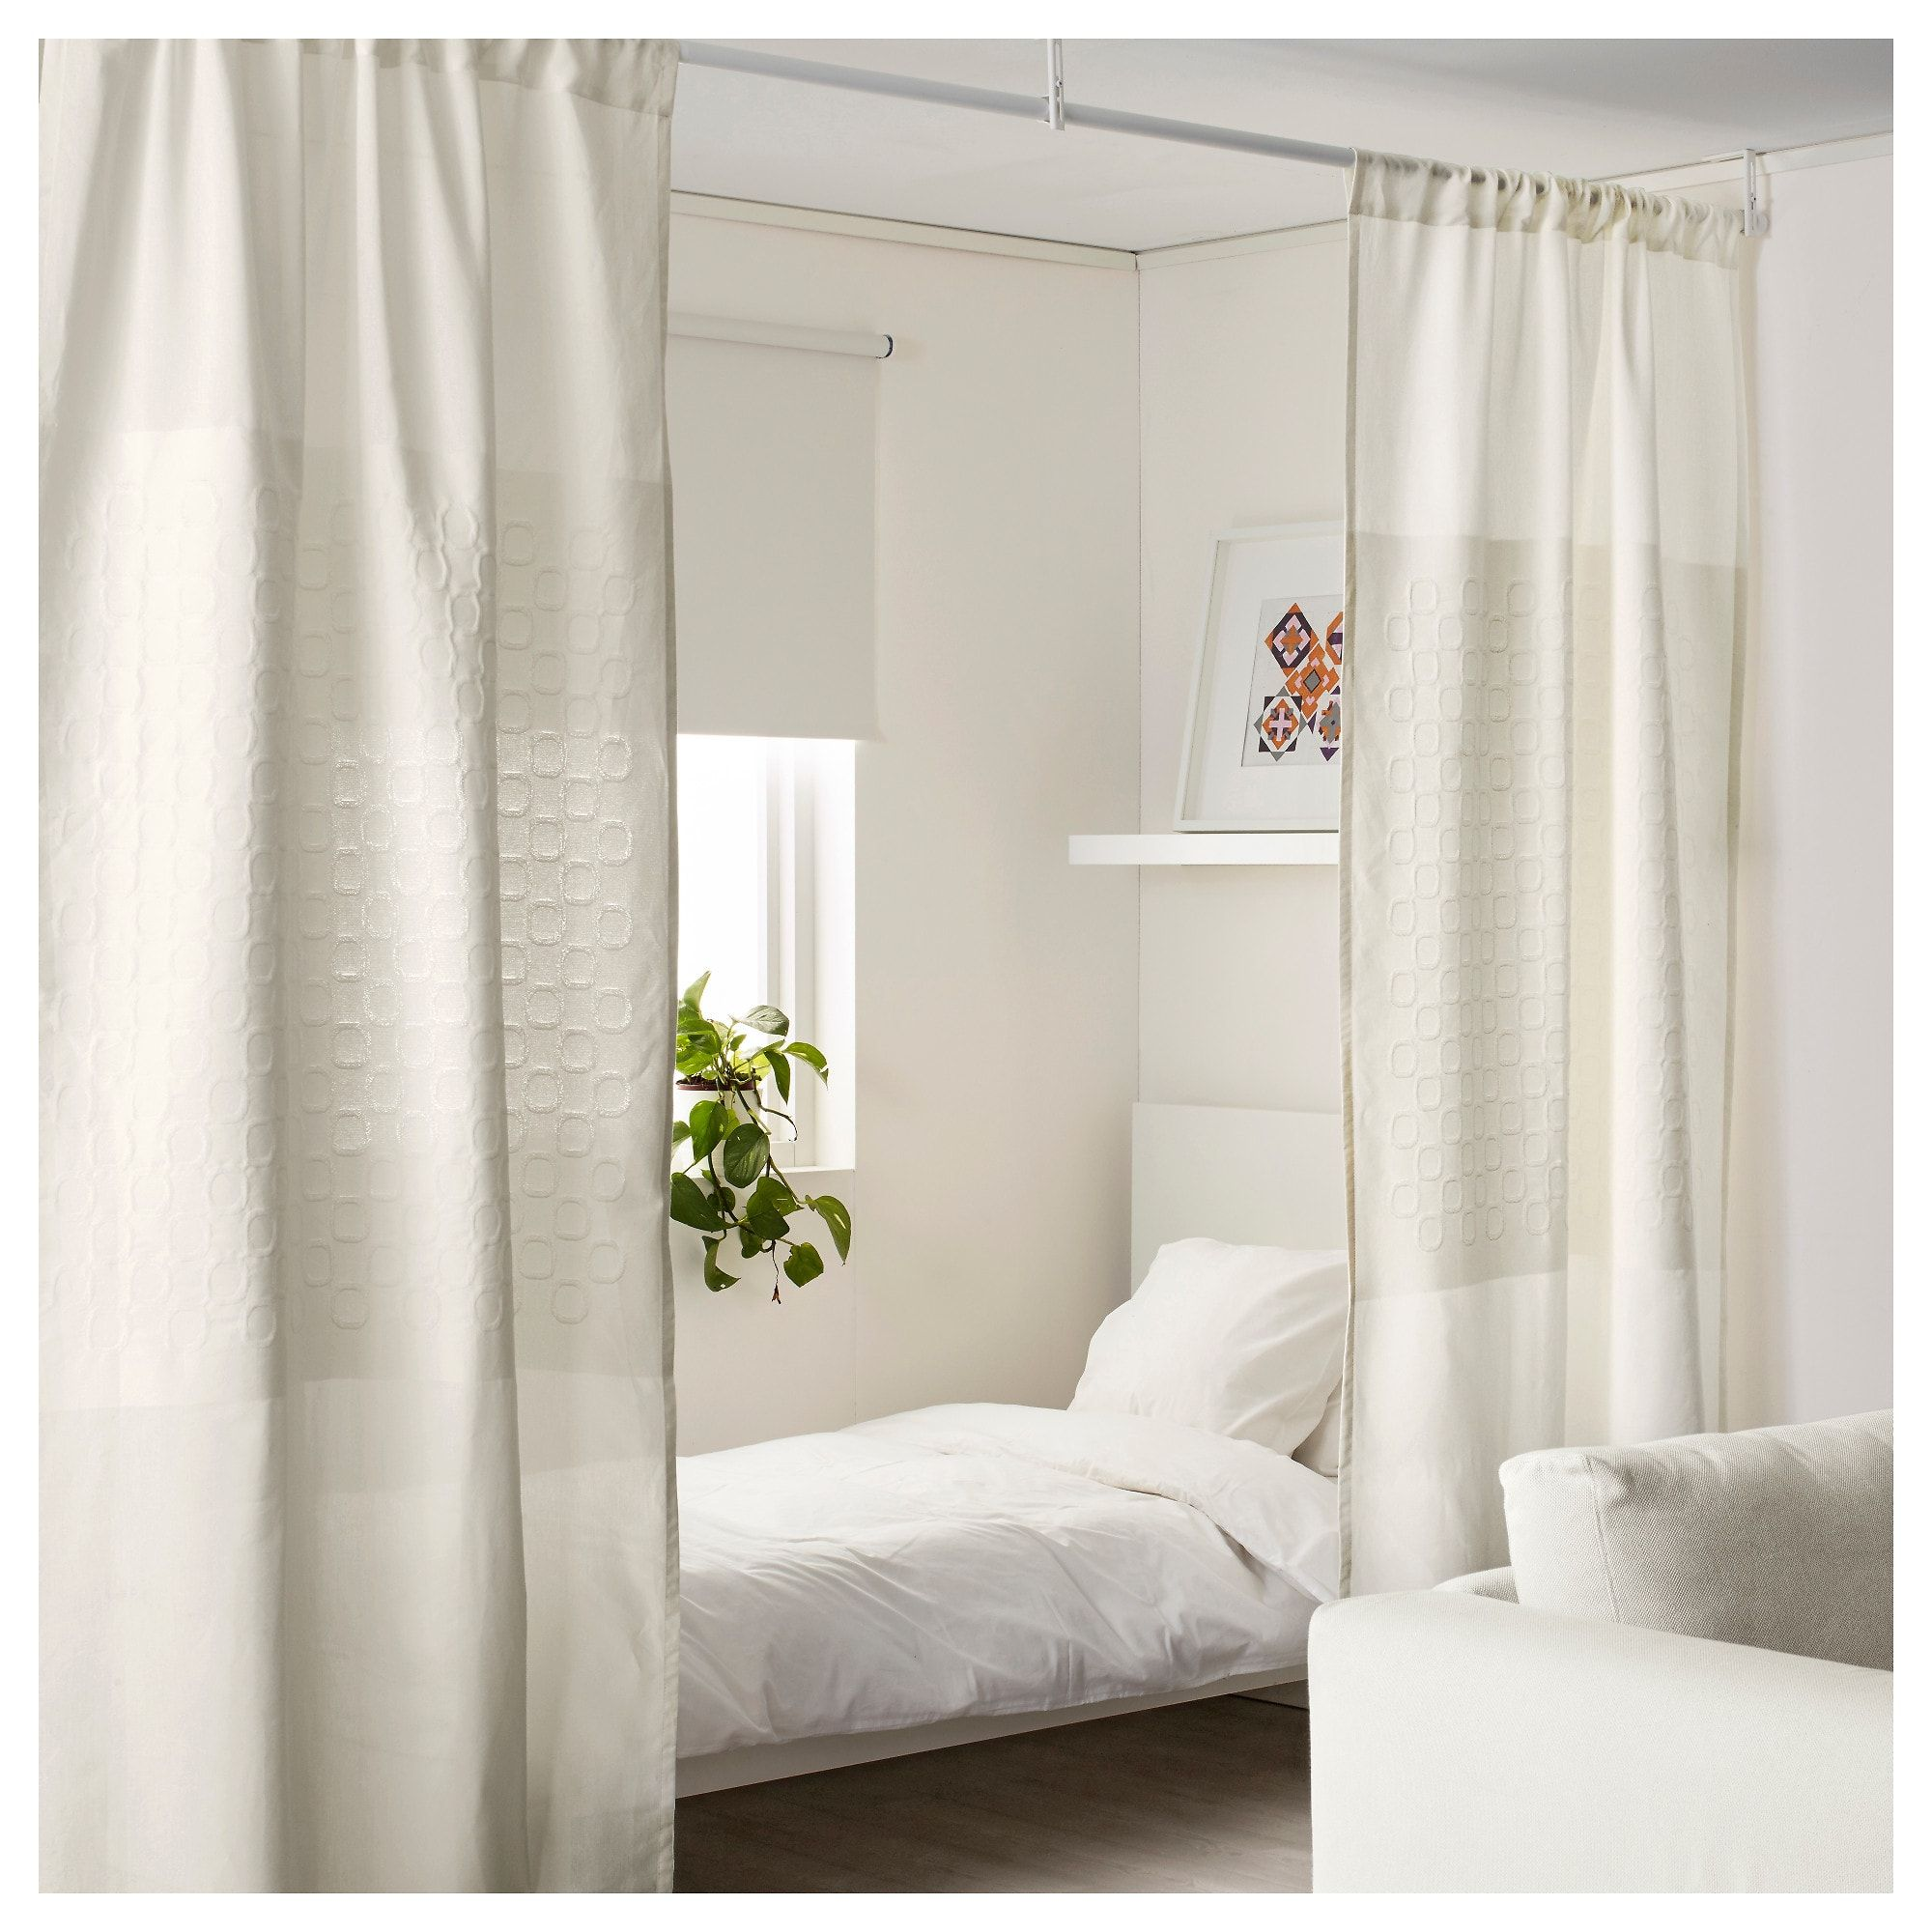 Us furniture and home furnishings 2019 apartment ideas - Room divider curtain ideas ...